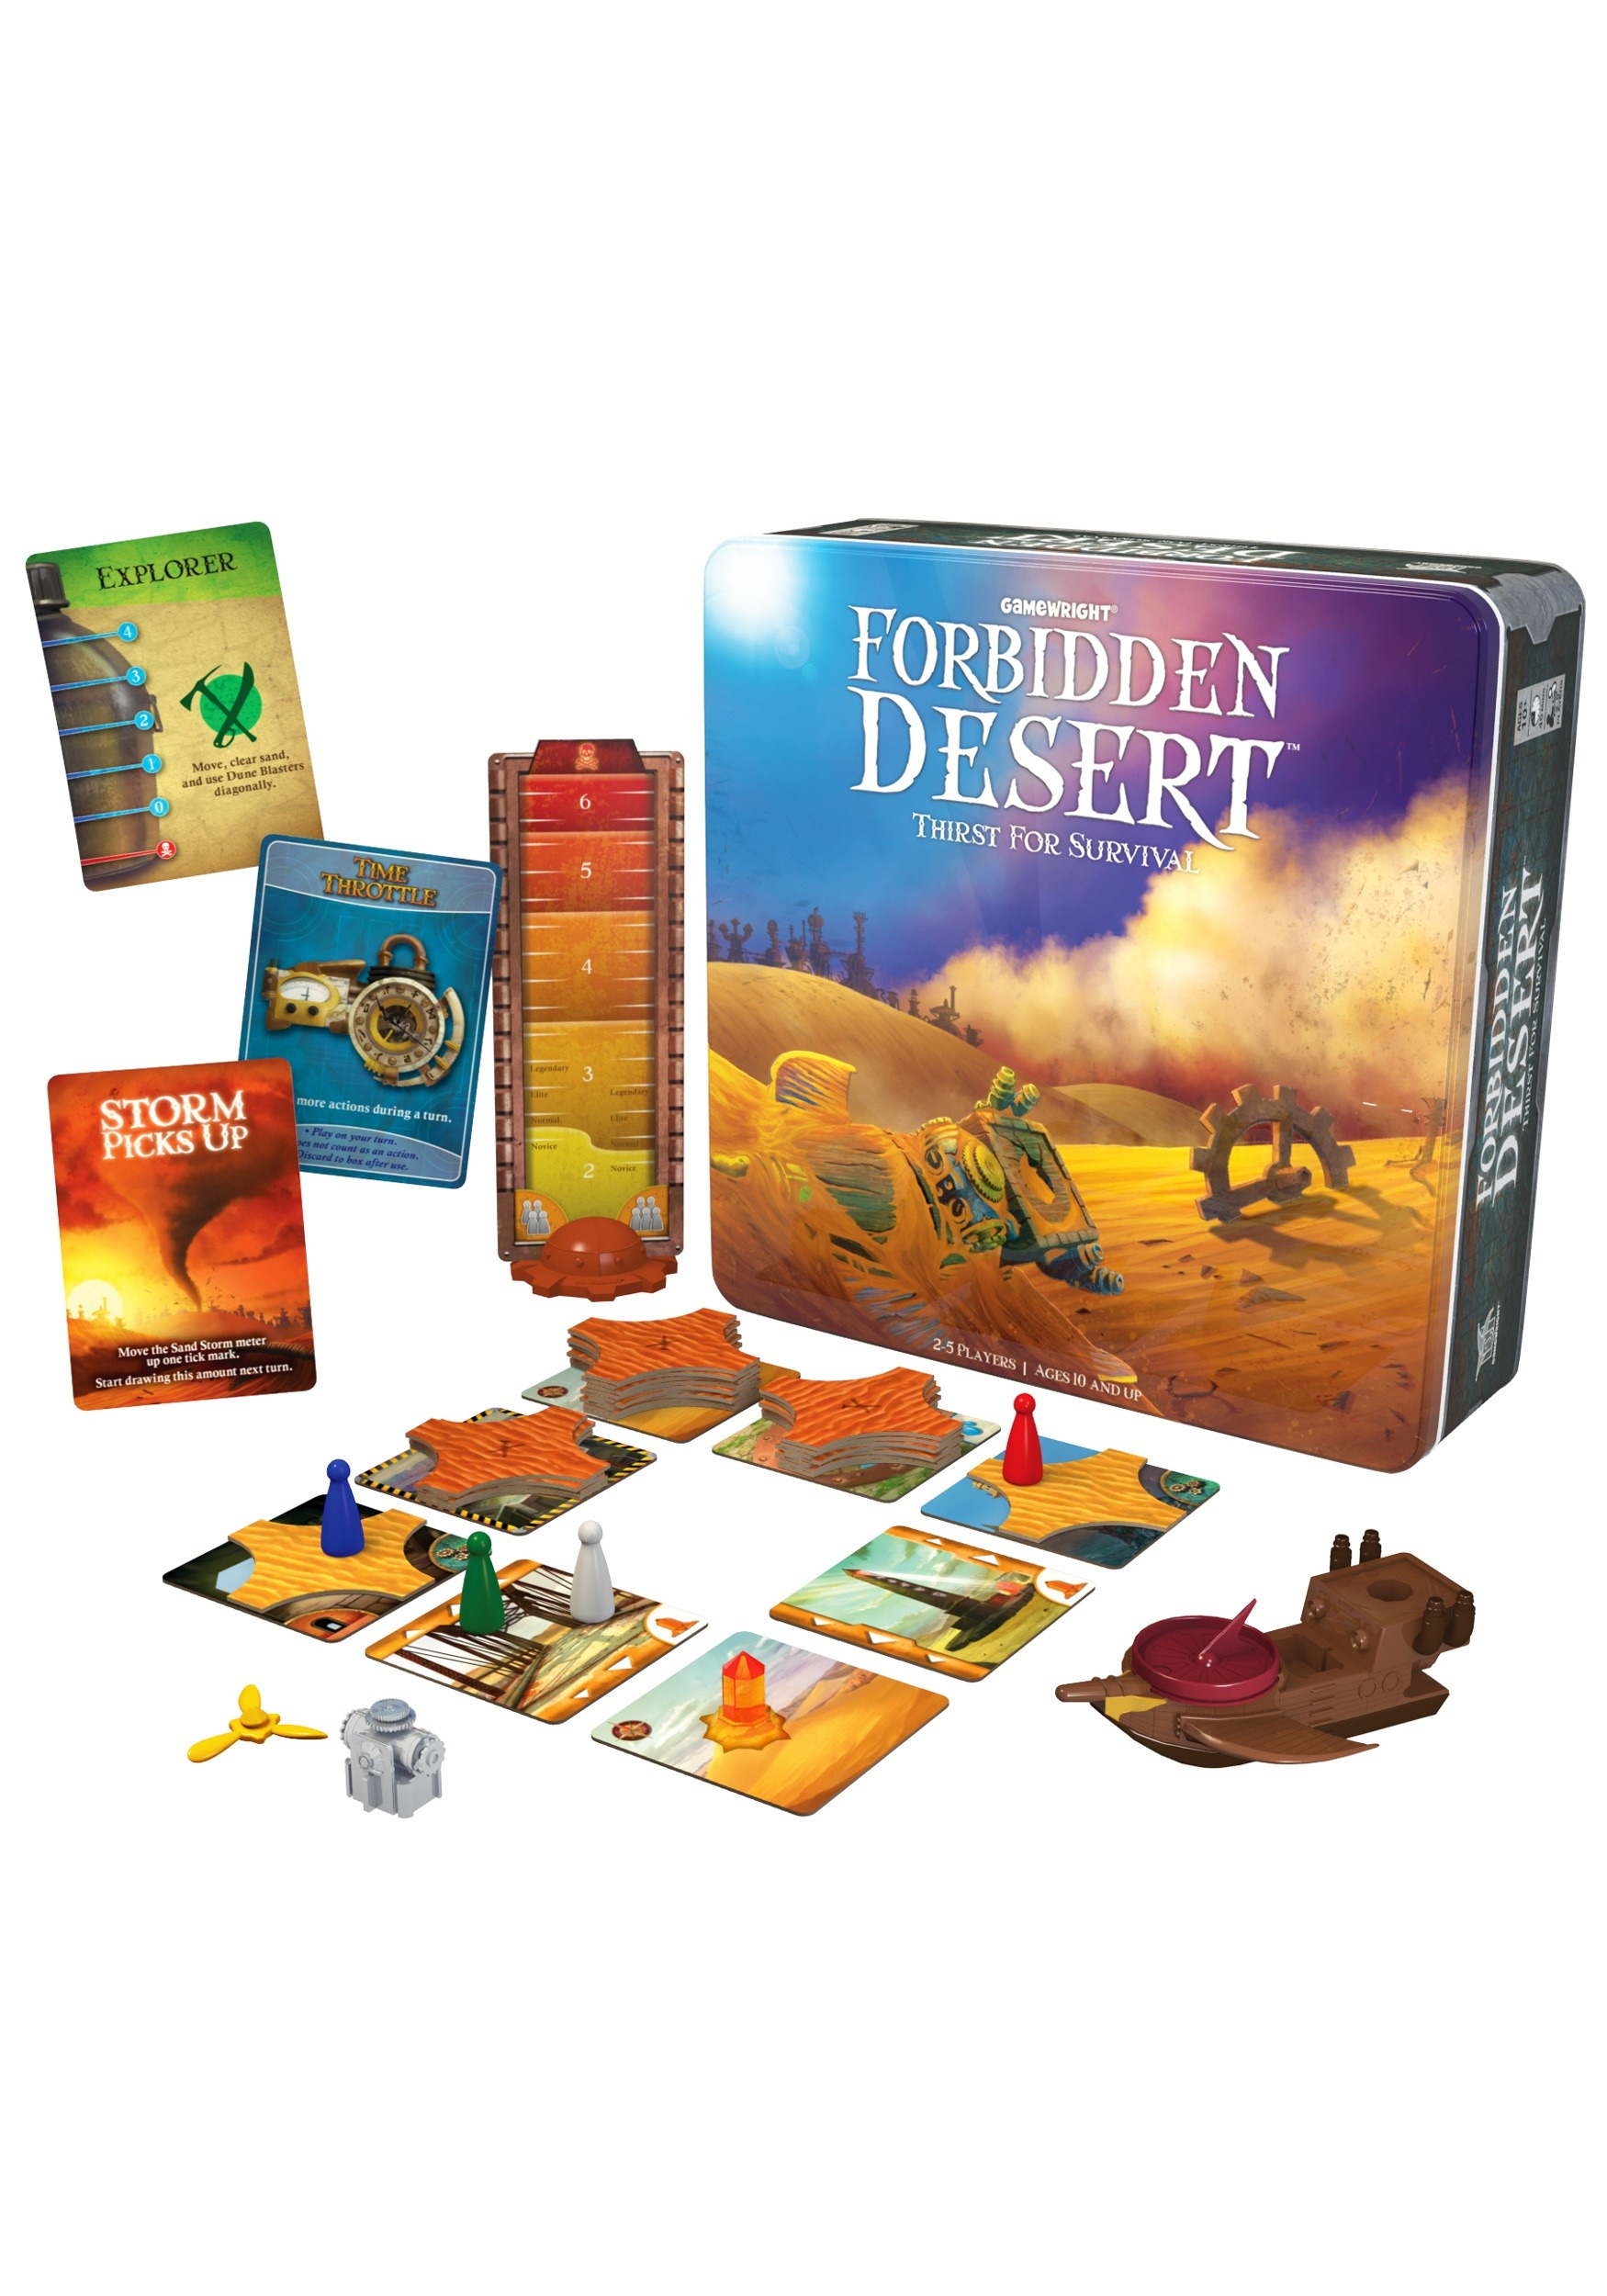 Gamewright Forbidden Desert: Thirst for Survival